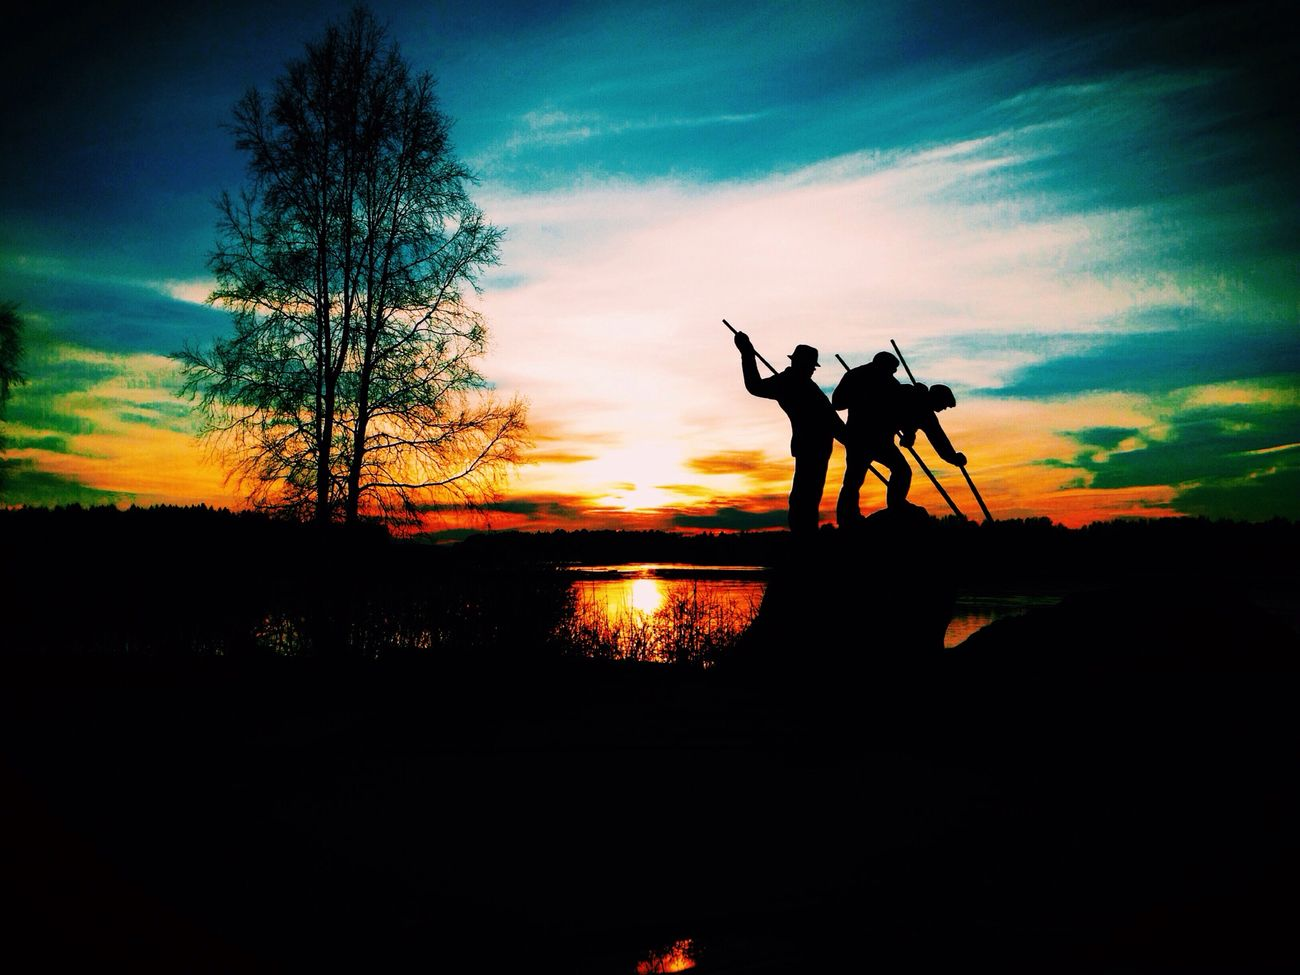 sunset, silhouette, sky, scenics, tranquility